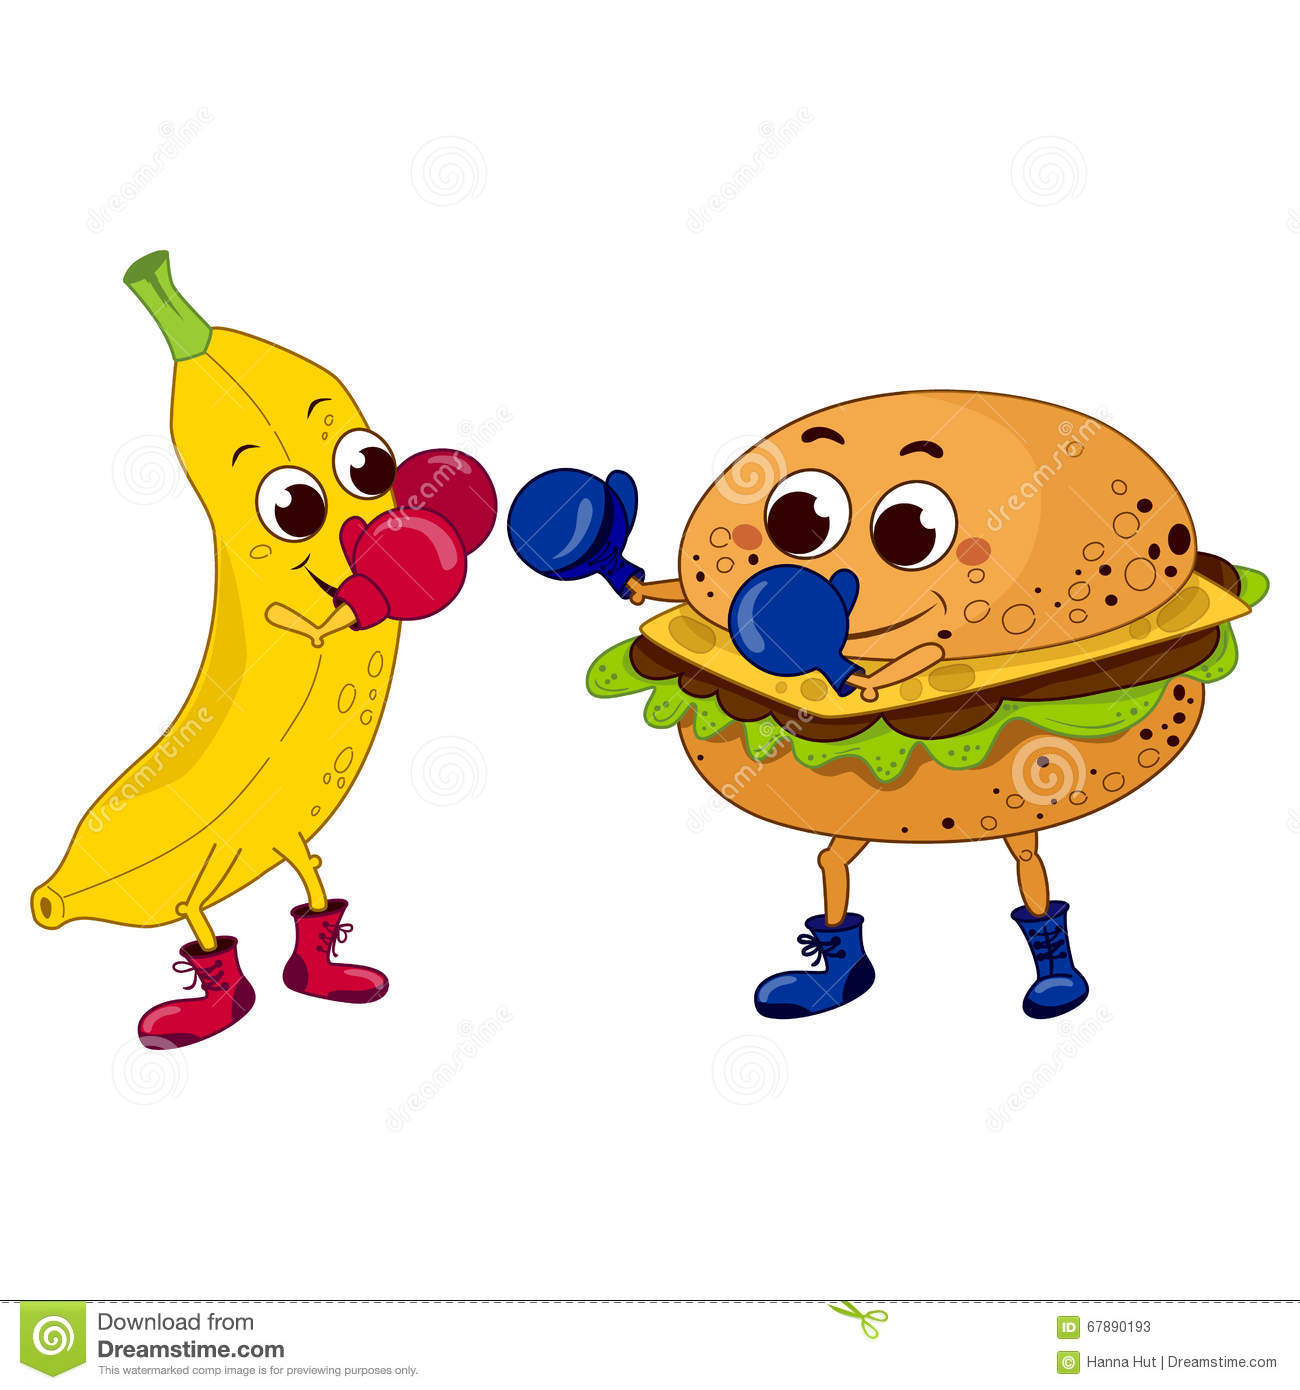 Promotion Of Healthy Food, Banana Box With A Hamburger For.